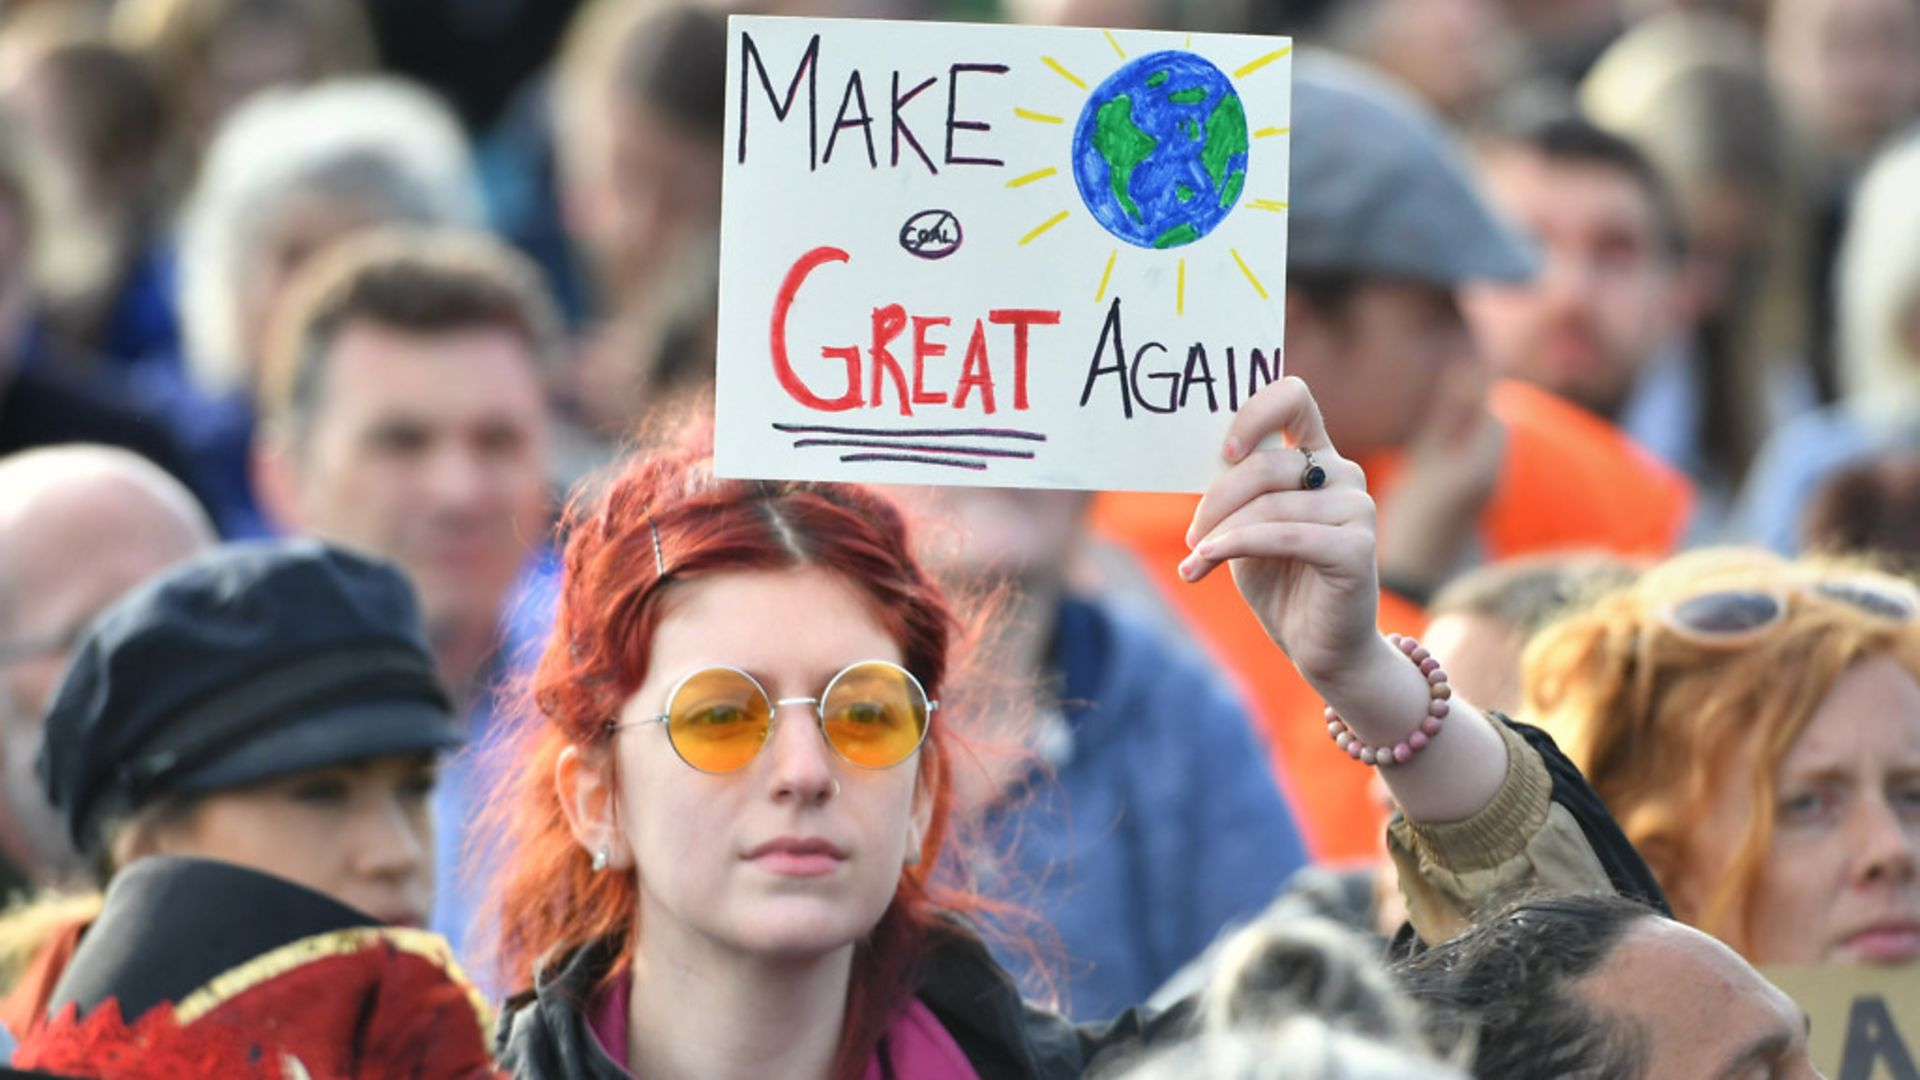 MAKE THE WORLD GREAT AGAIN: Climate change protesters in London - Credit: PA Wire/PA Images